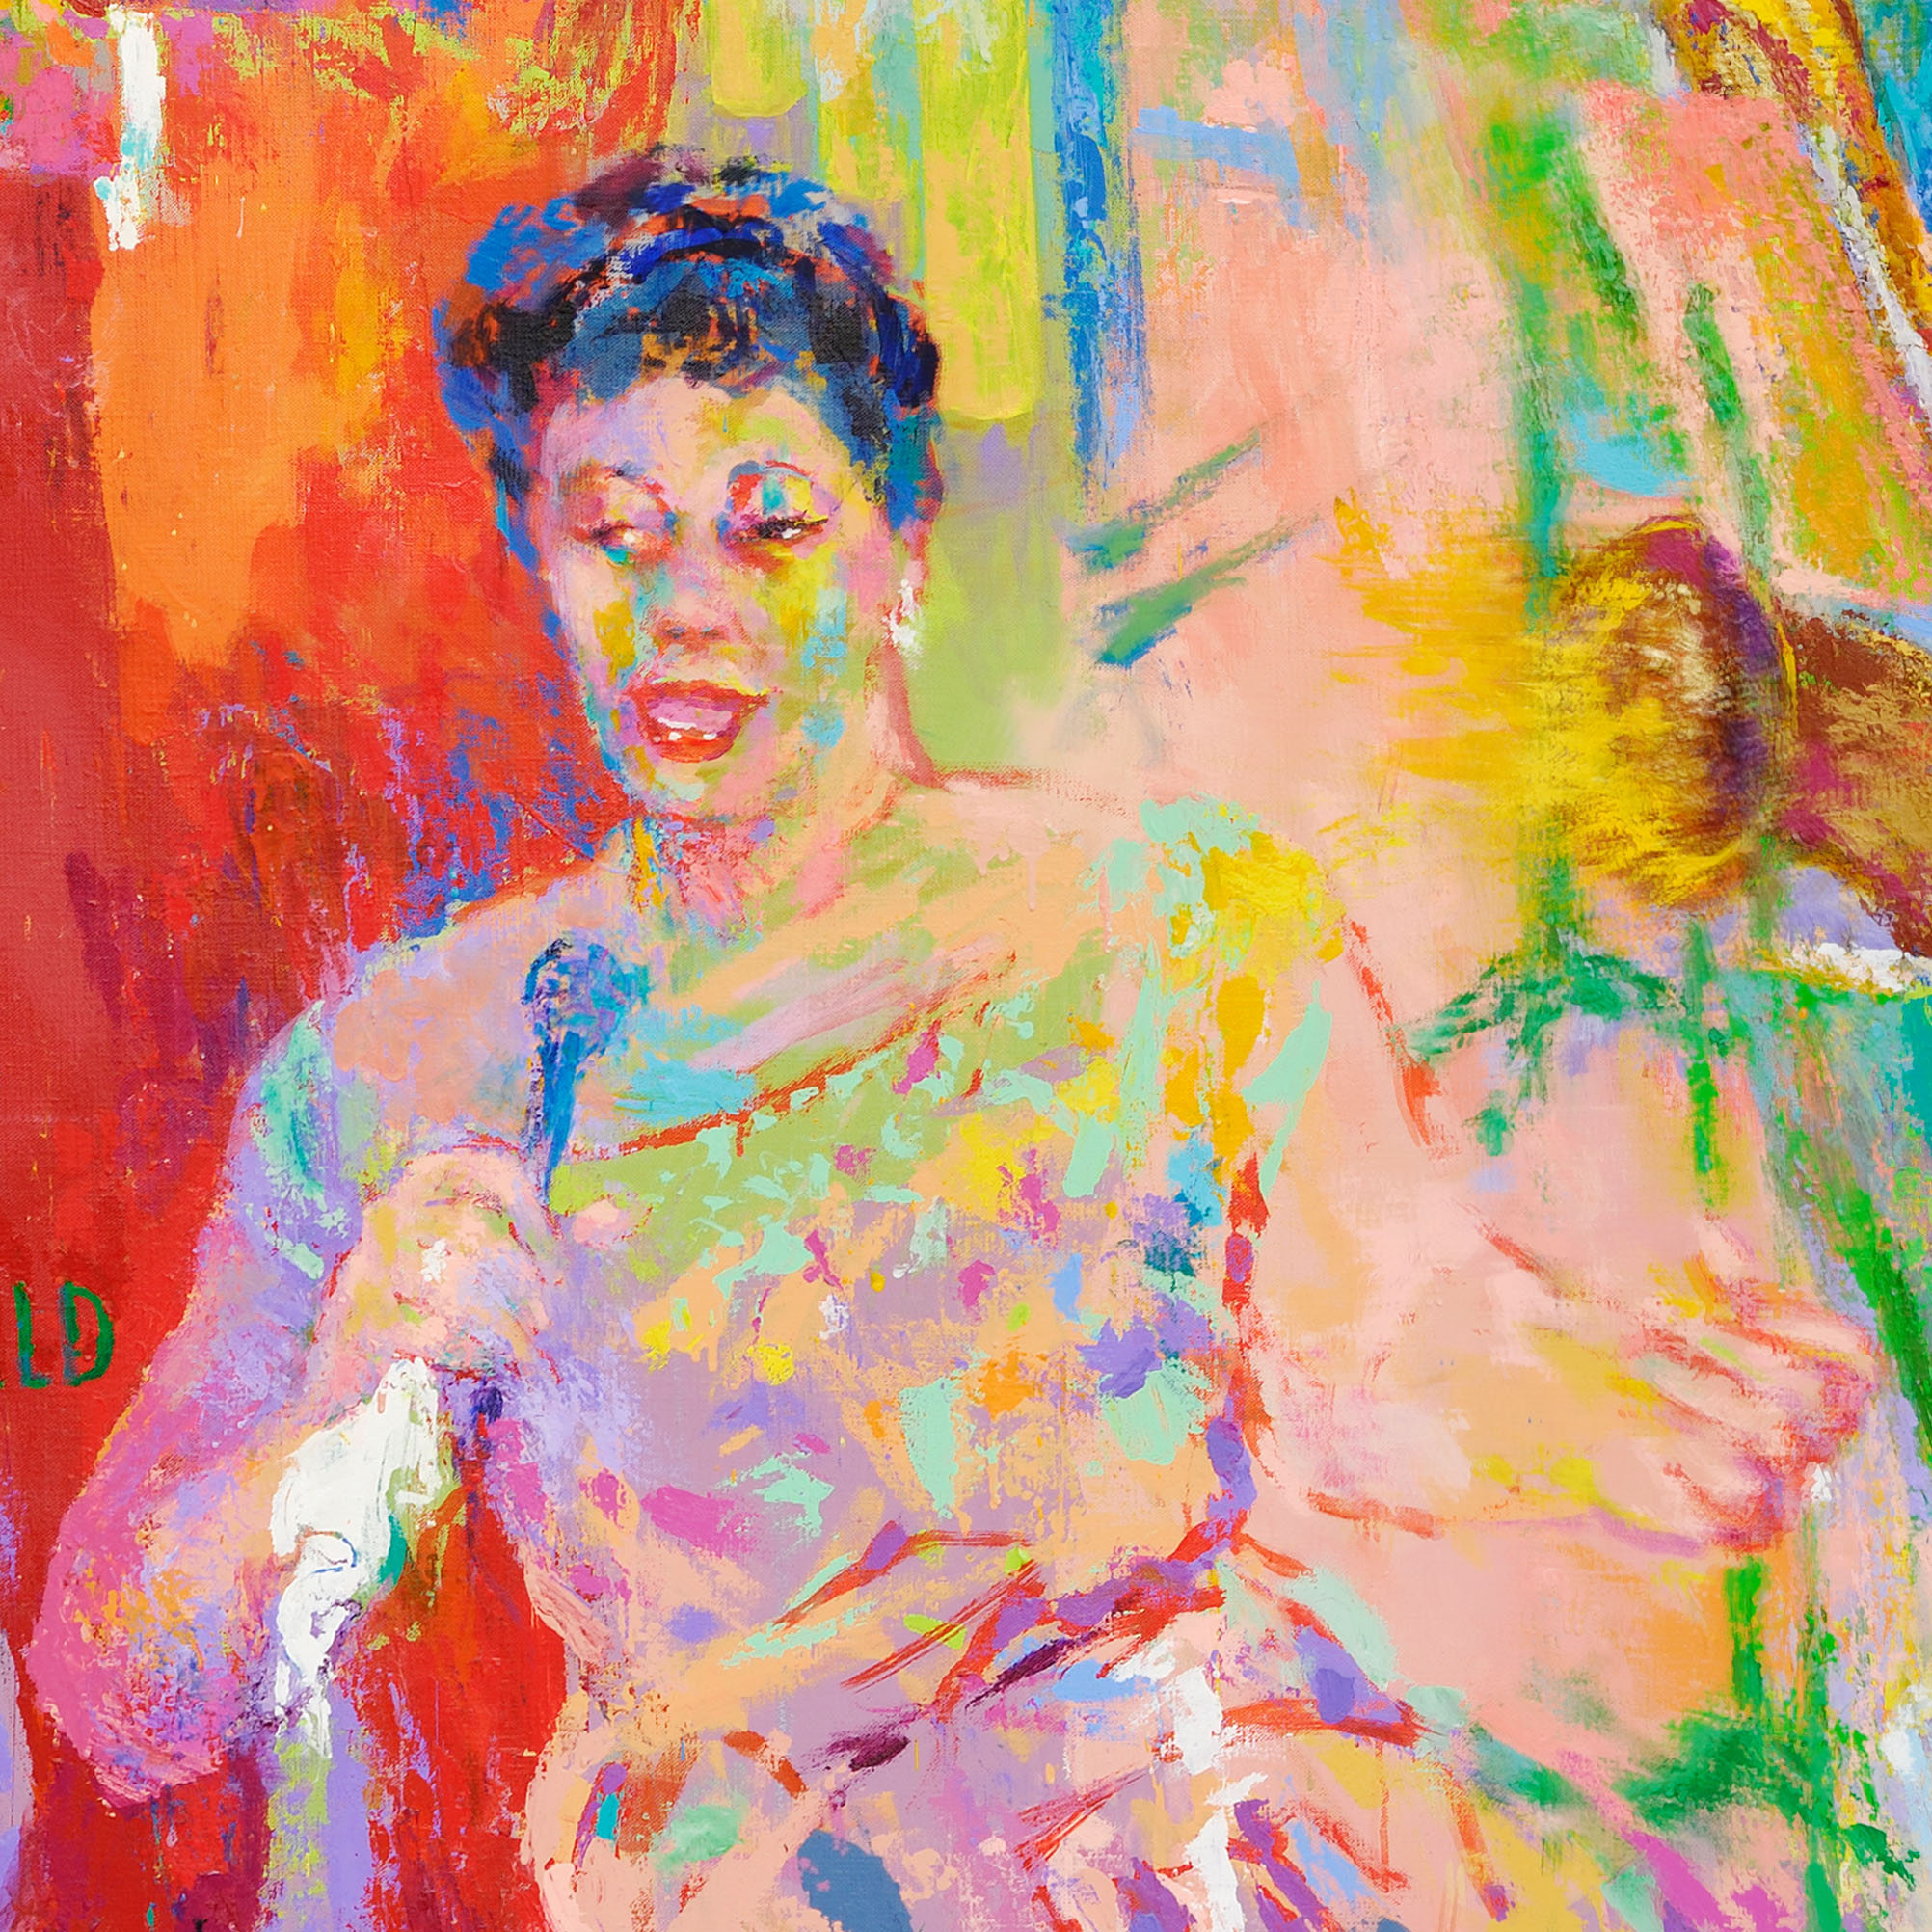 Meet the titans of jazz: A guide to LeRoy Neiman's fantasy